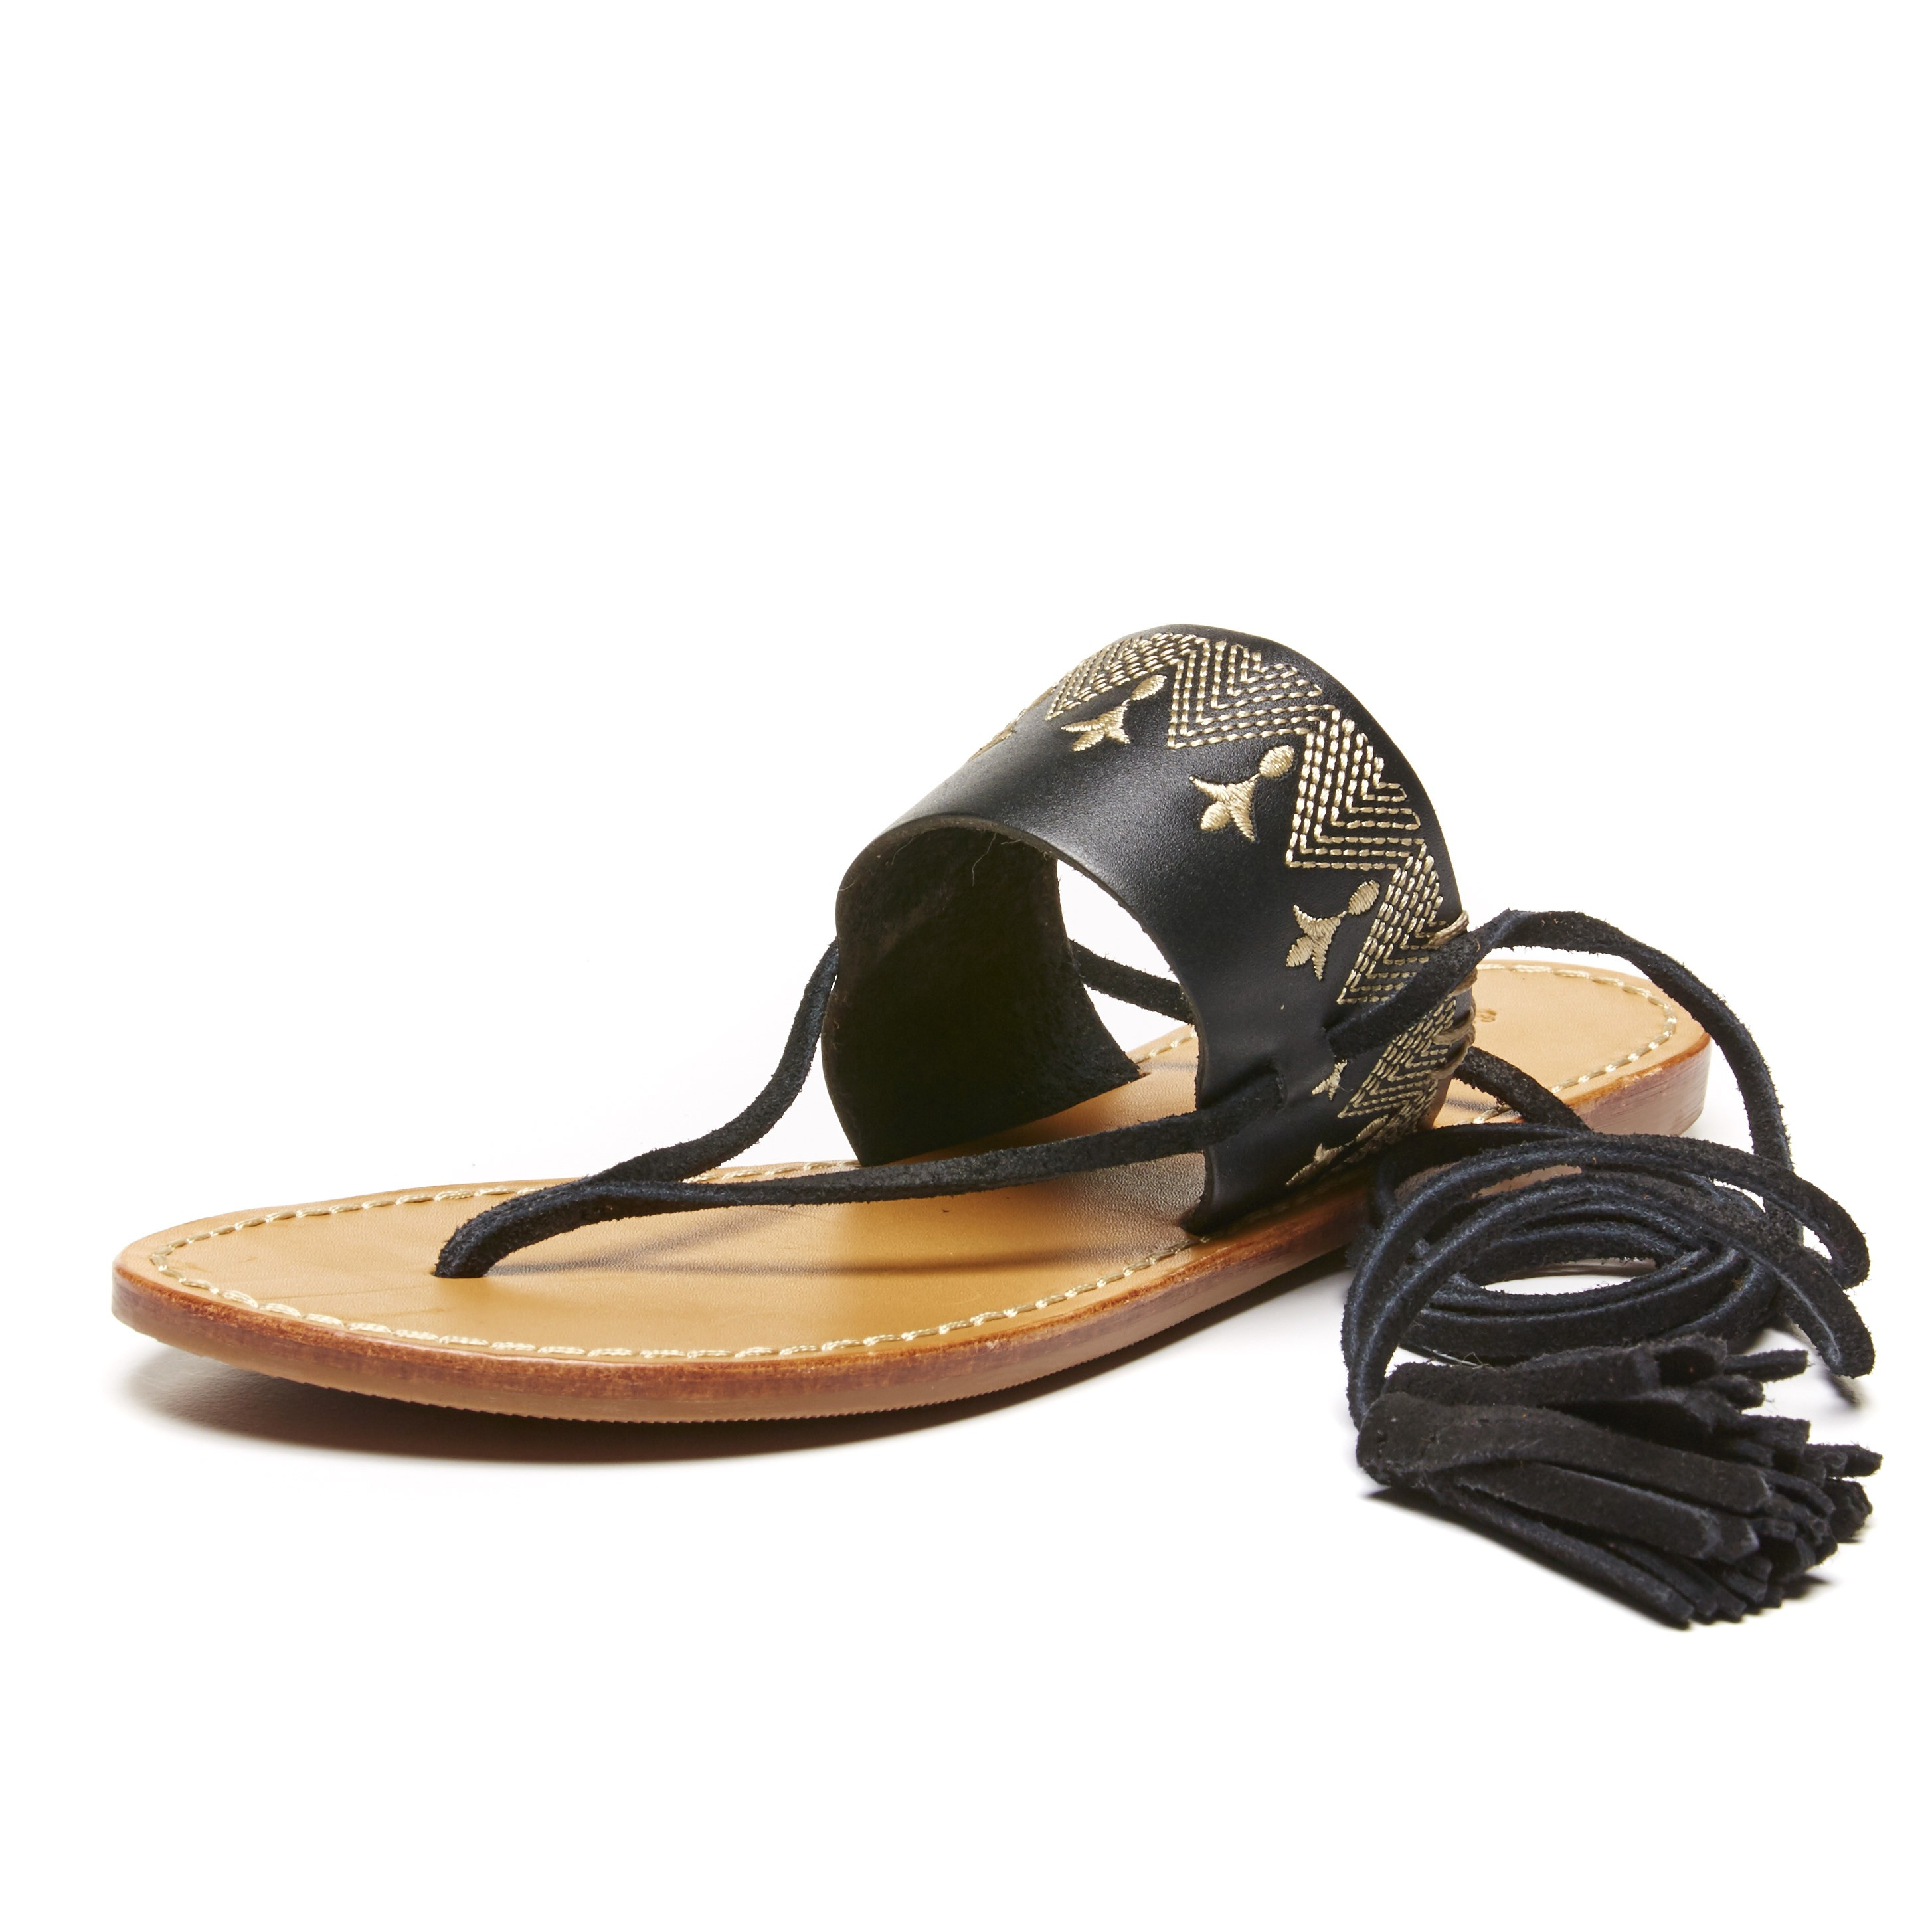 9b8e94bc9246 Soludos Leather Black Flat Lace Up Sandal for Women - Soludos ...